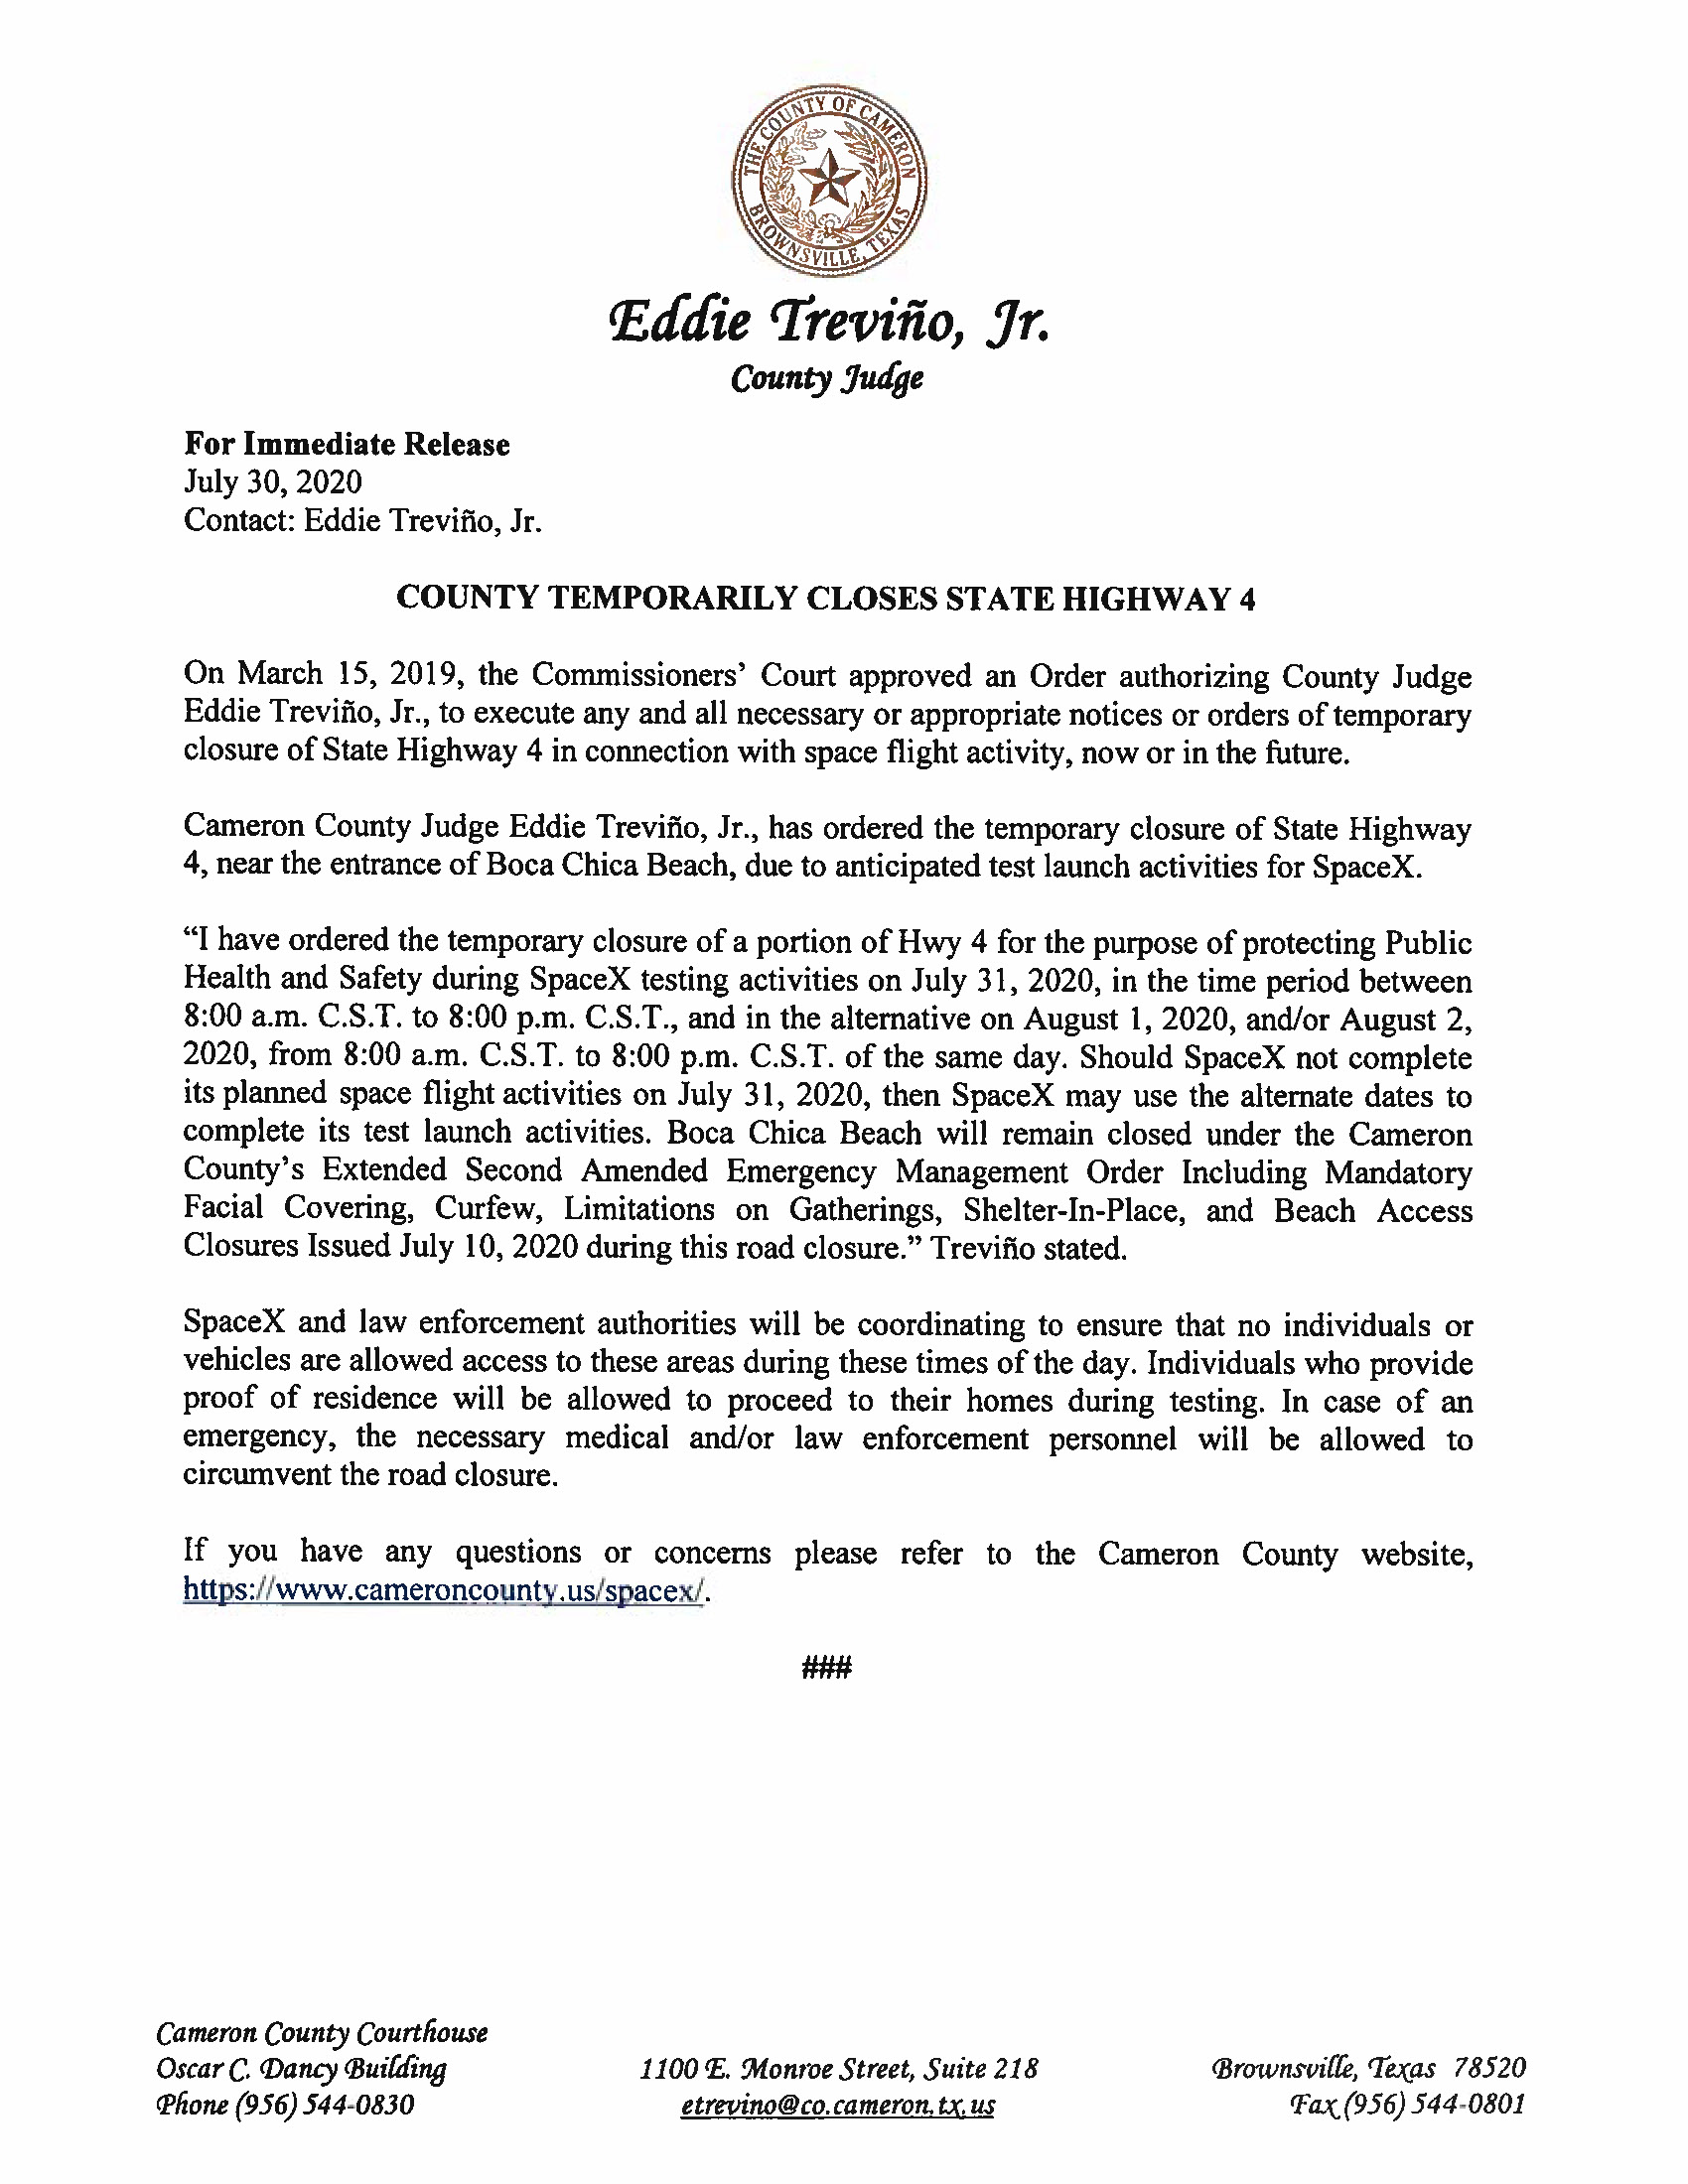 Press Release In English And Spanish.07.31.20 Page 1